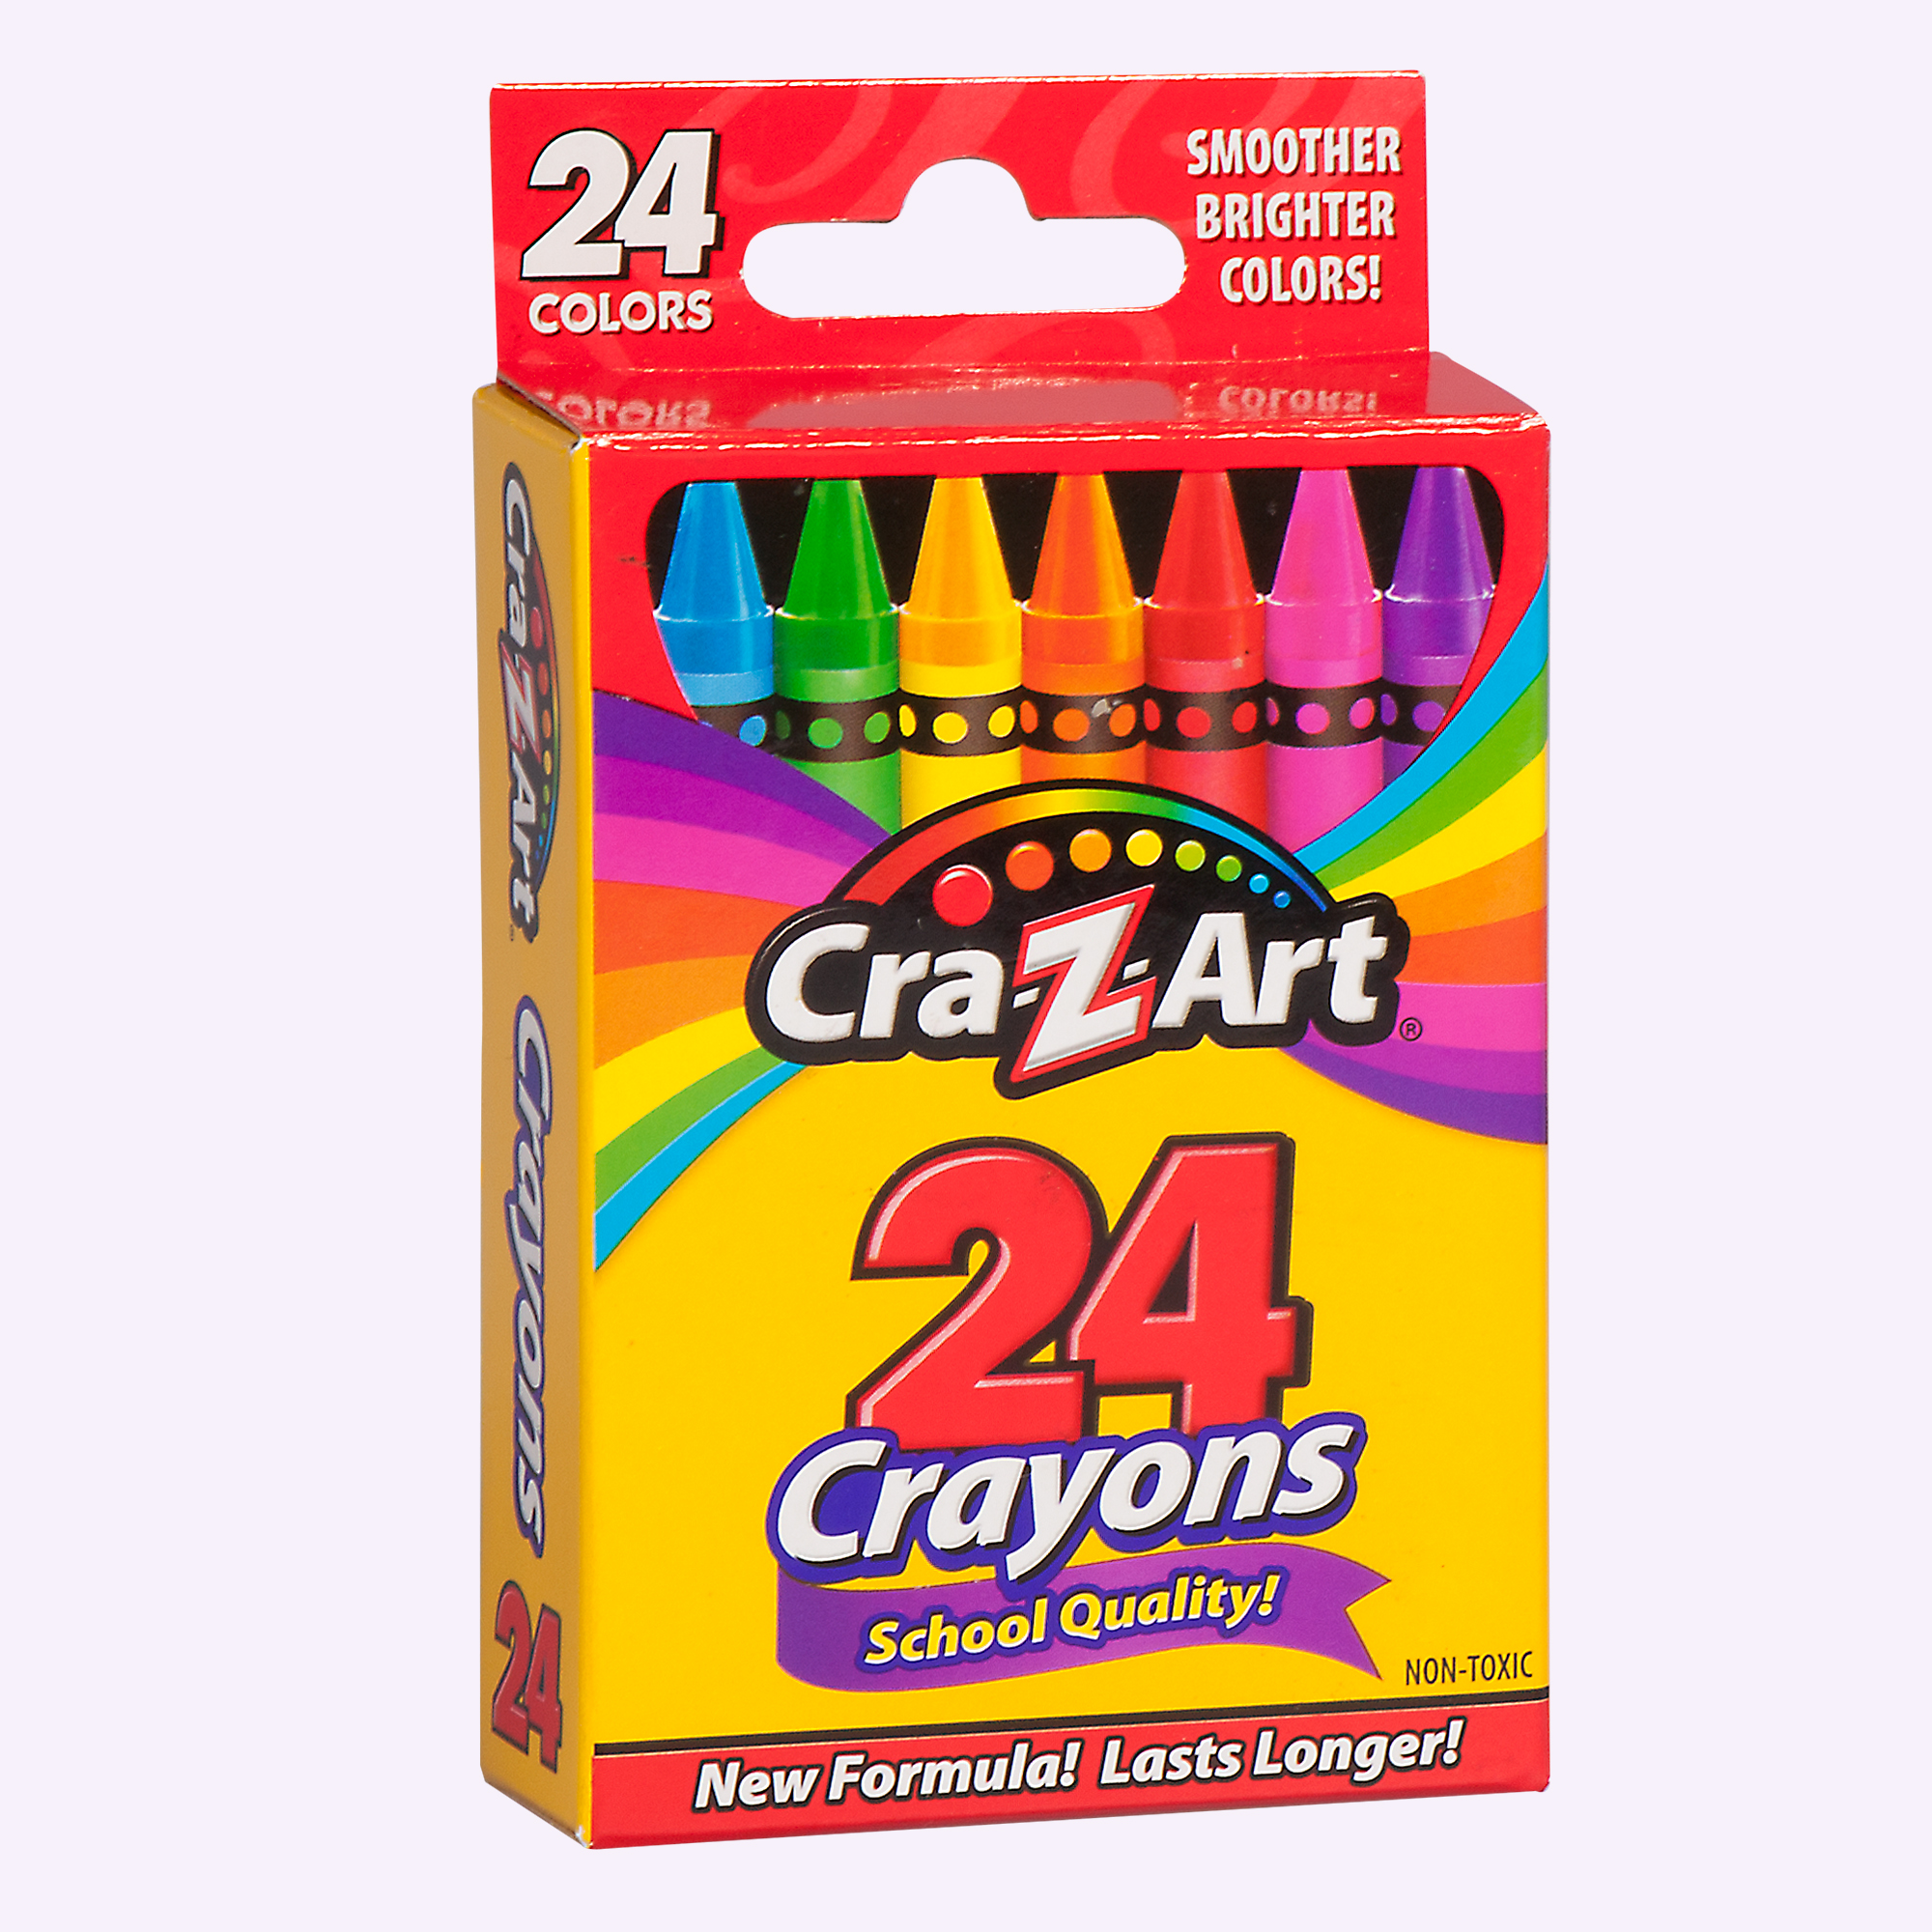 2-Pk. Cra-Z-Art School Quality Crayons